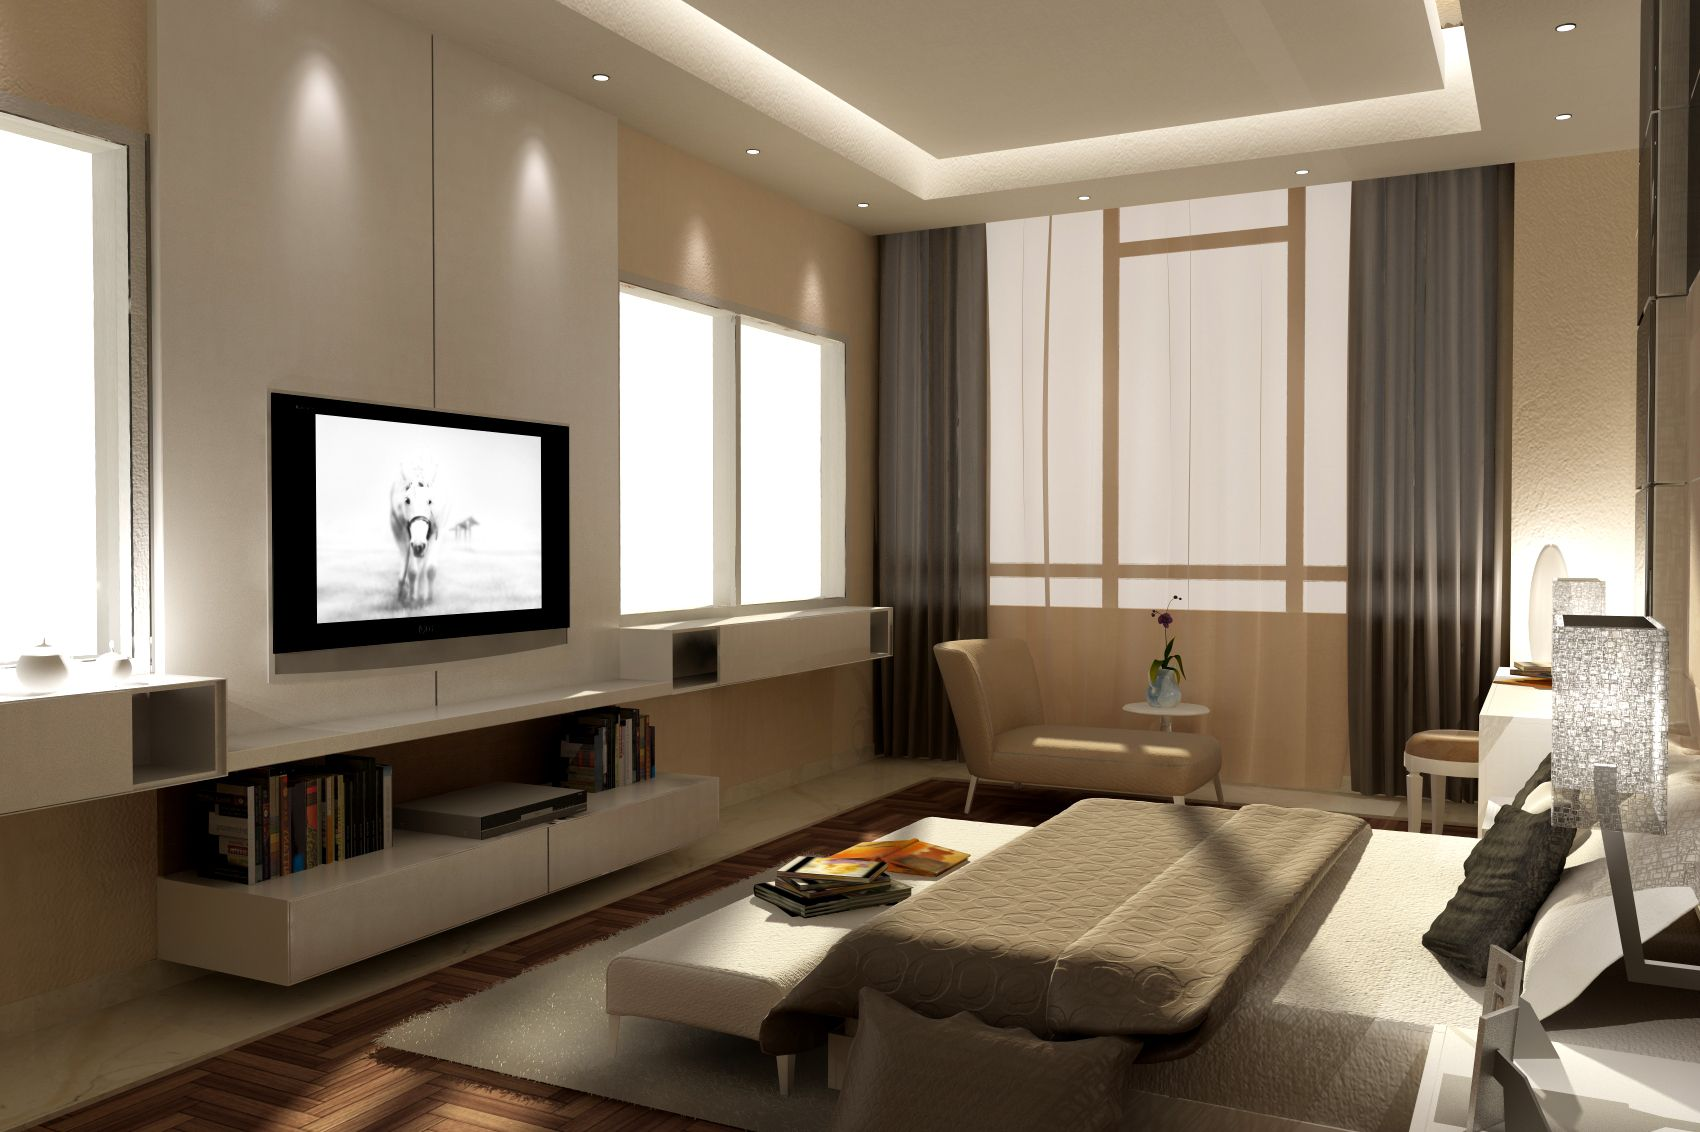 Bedroom modern bedroom interior design 3d max 3d for 3 bedroom interior design